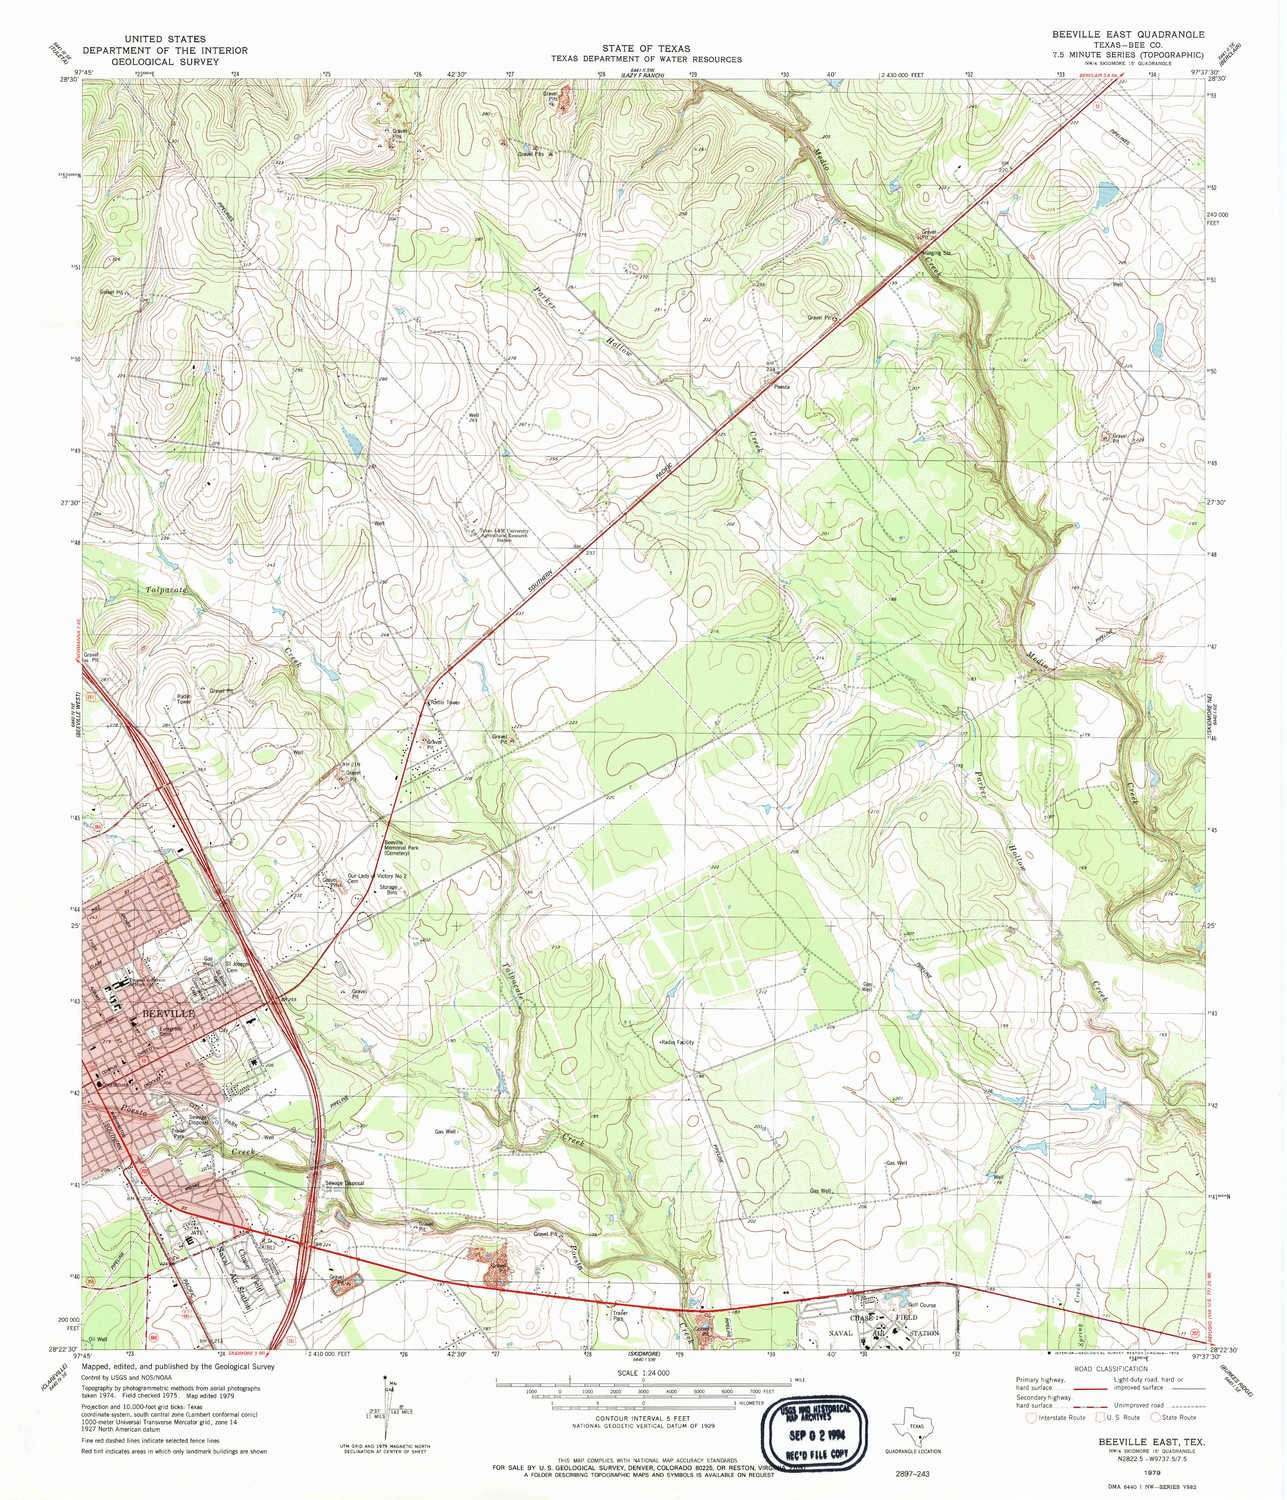 Amazon.com : YellowMaps Beeville East TX topo map, 1:24000 scale, 7.5 X 7.5 Minute, Historical, 1979, updated 1979, 27.1 x 23.3 IN - Paper : Sports & ...